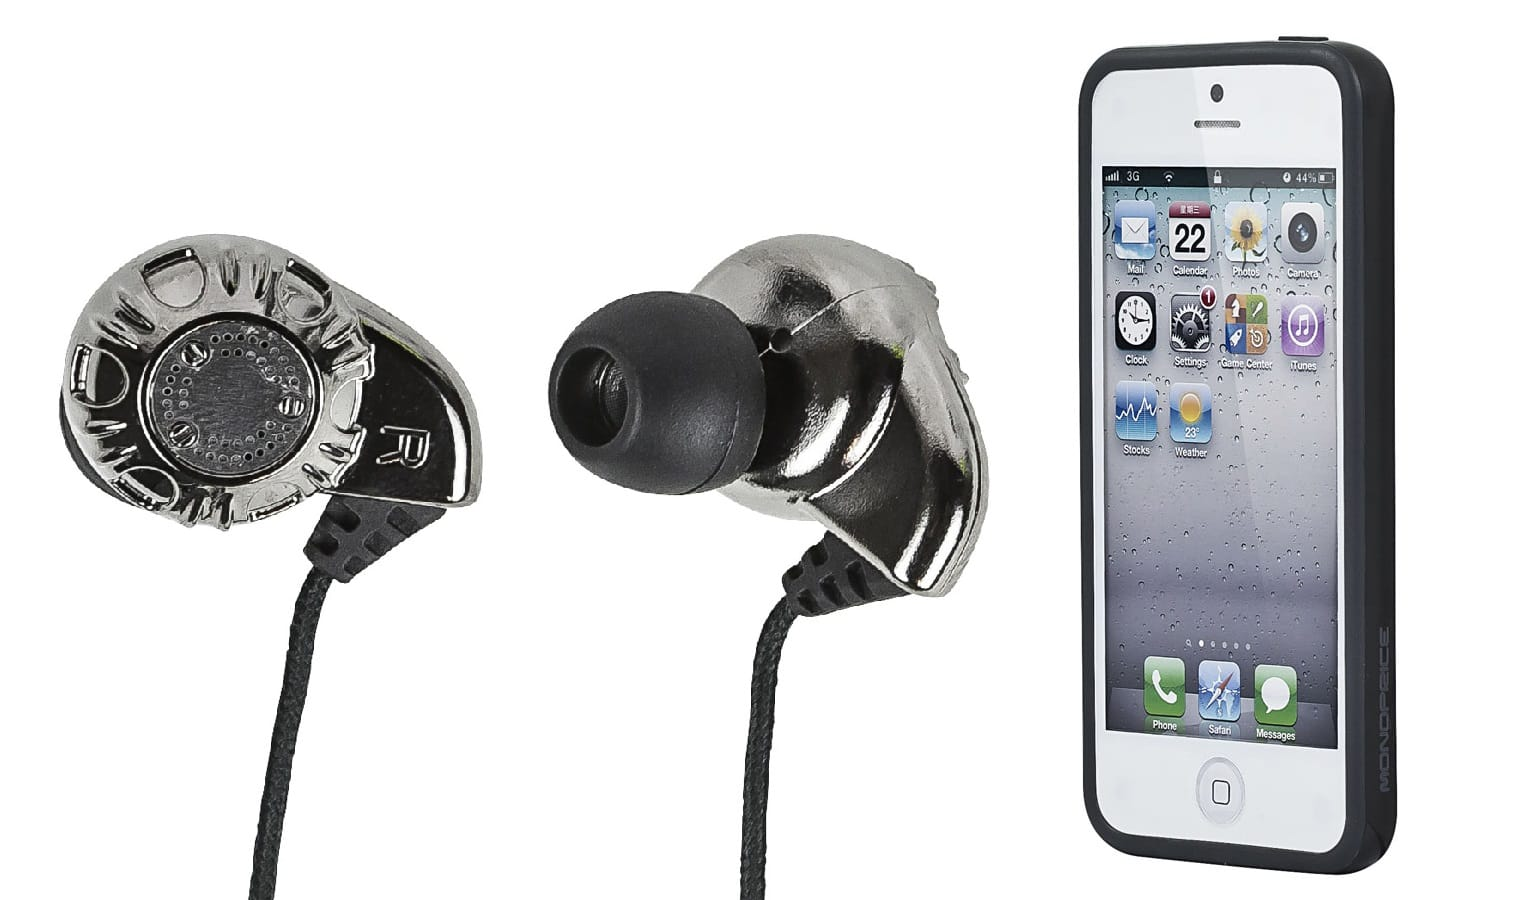 *back again* Monoprice Enhanced Bass Hi-Fi Noise Isolating Earphones (silver) + iPhone Case $4.25 + Free shipping (additional earphones $2.54 each)